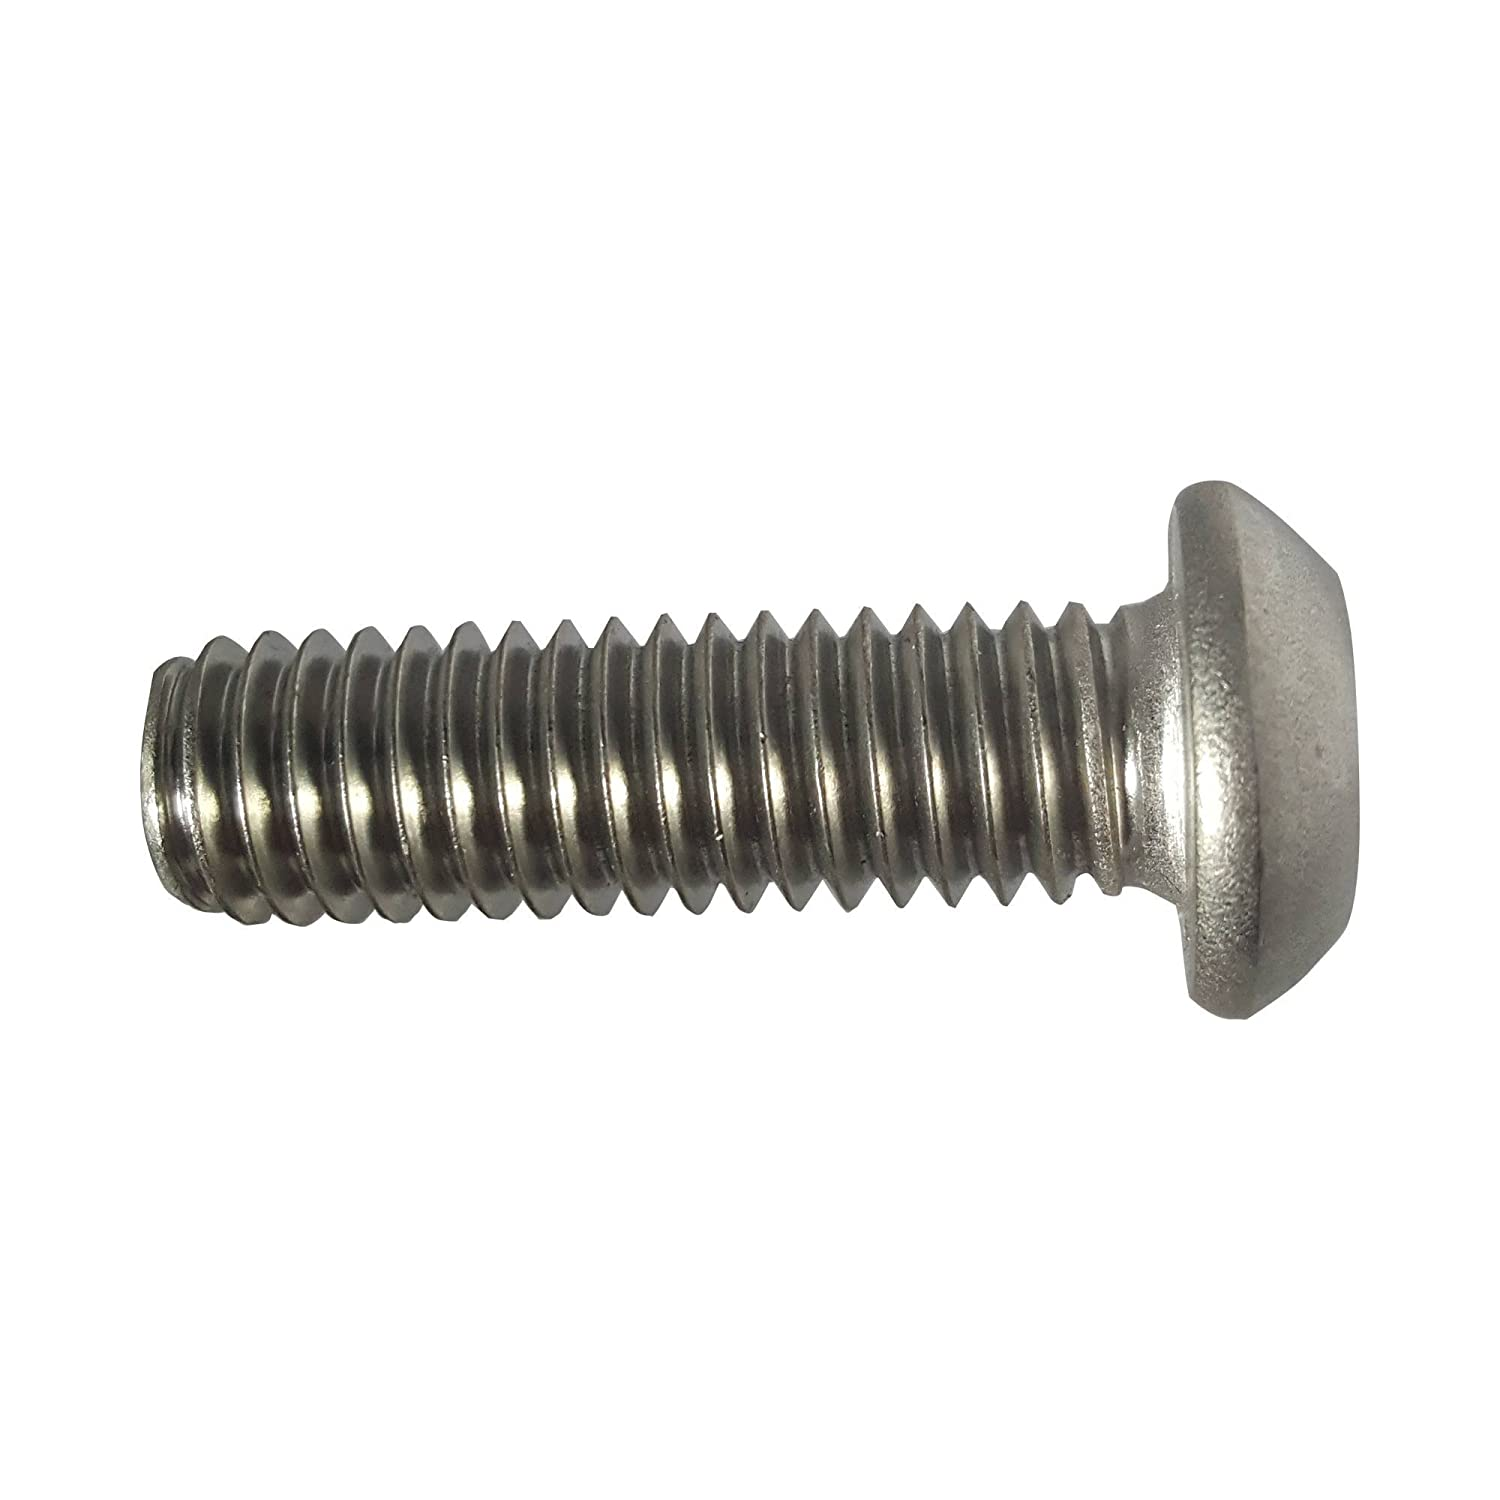 10-24 x 3//4 Button Head Torx Security Machine Screw Bolt Screws Stainless Steel Tamper Resistant Qty 25 Thread Size 10-24 x 3//4 Length by Fastenere Qty 25 Thread Size 10-24 x 3//4 Length by Fastenere Lightning Stainless